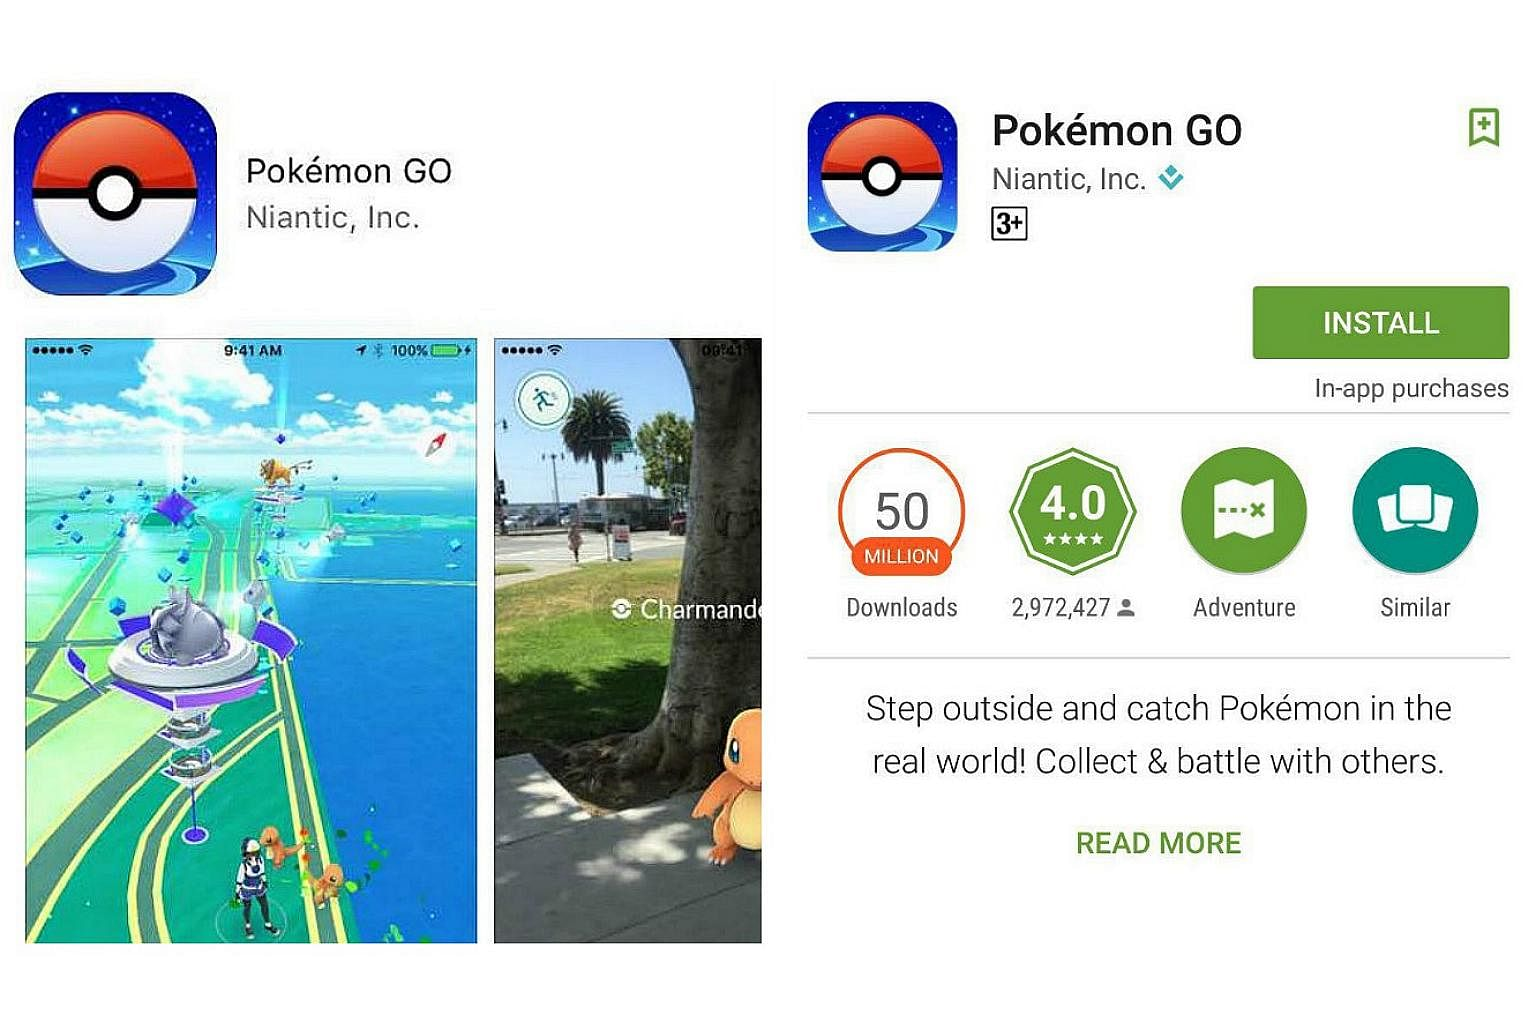 pokemon go available for download in singapore, singapore news & top